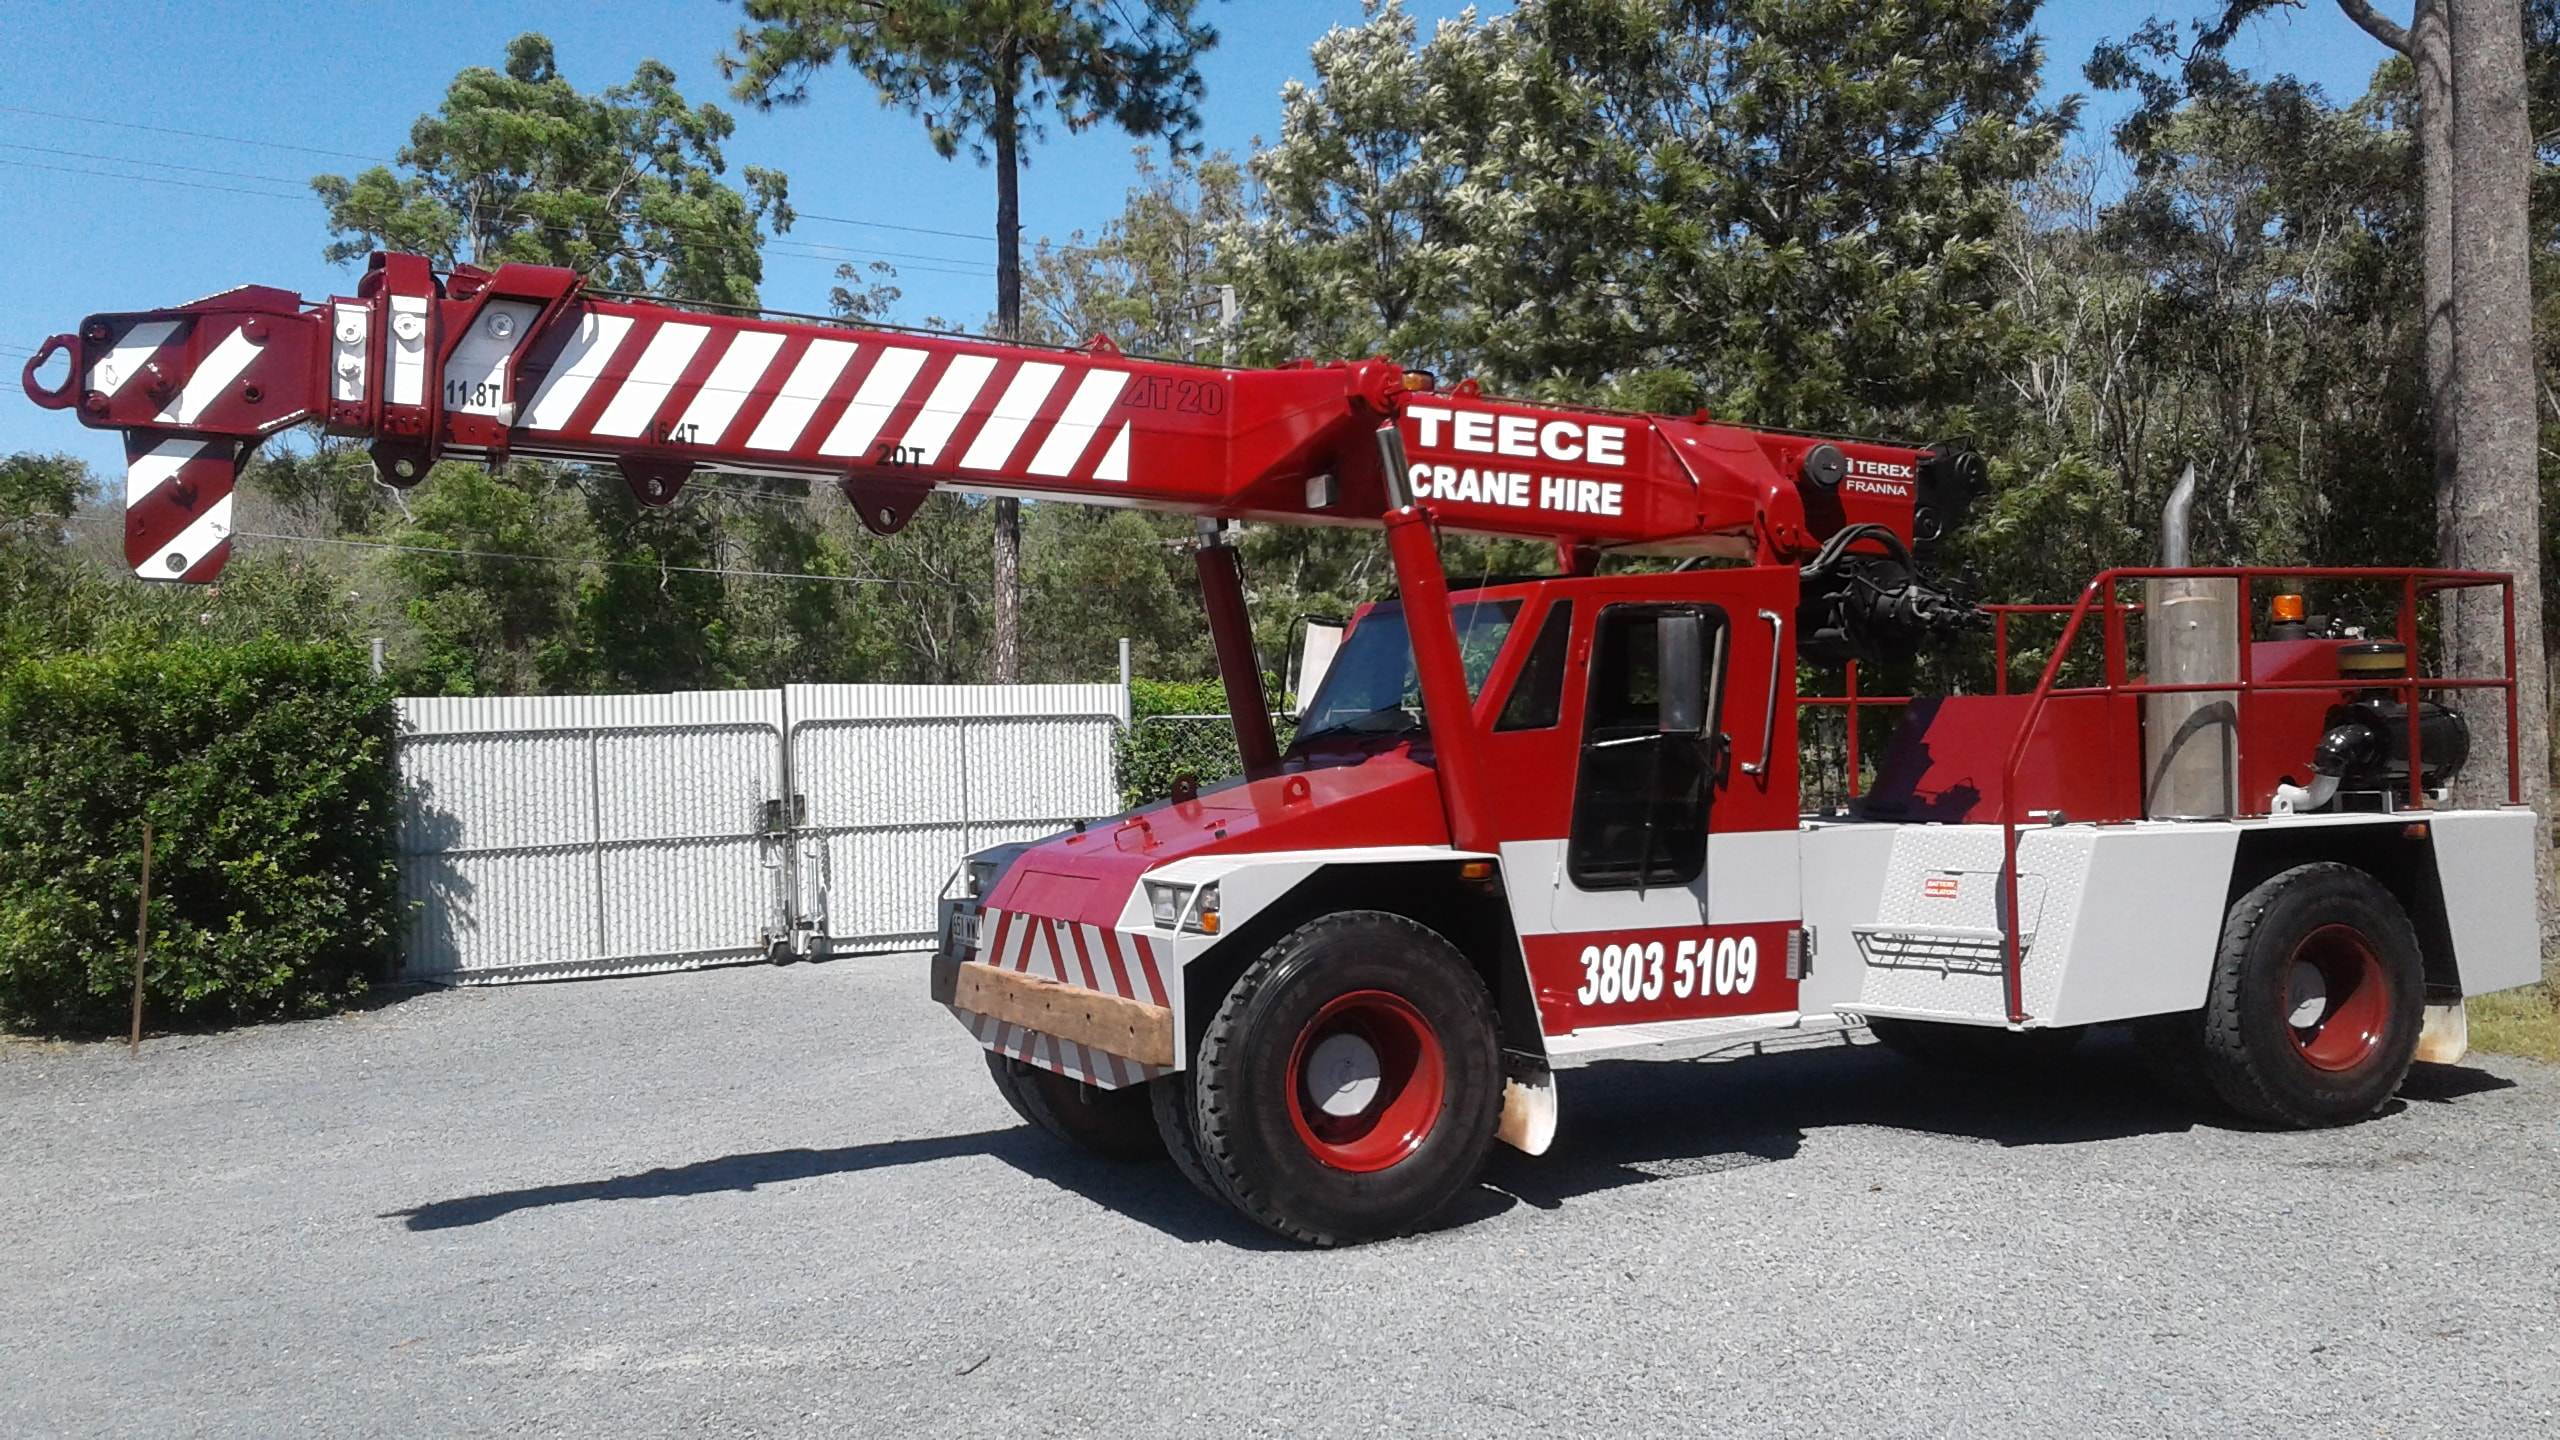 Teece Crane Hire - Franna And Mobile Crane Rental - Brisbane